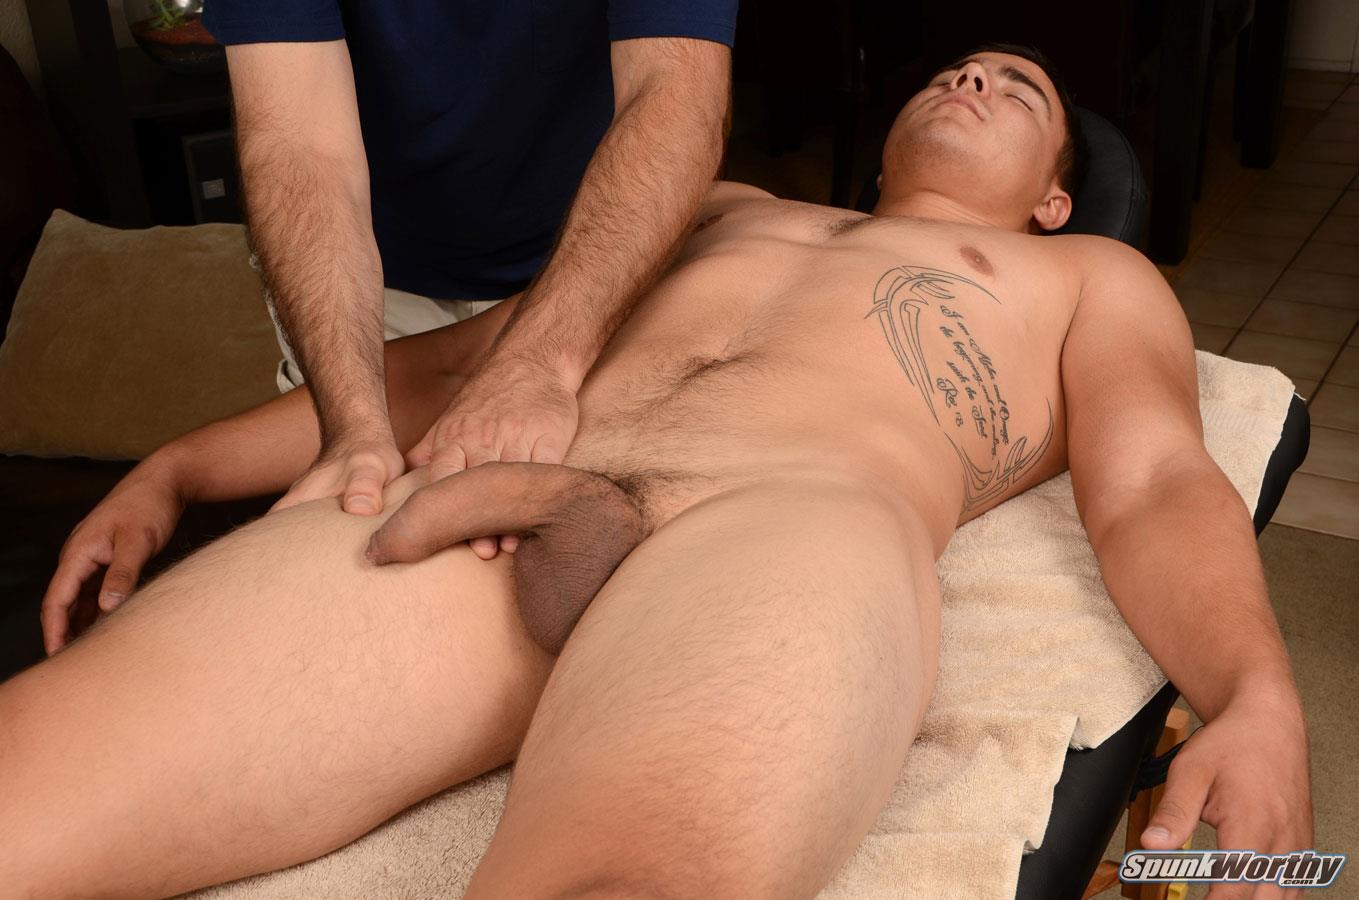 SpunkWorthy Yuri Straight Marine Getting Massage With A Happy Ending Big Uncut Cock Amateur Gay Porn 09 Straight Uncut Marine Gets A Massage With A Happy Ending From A Guy